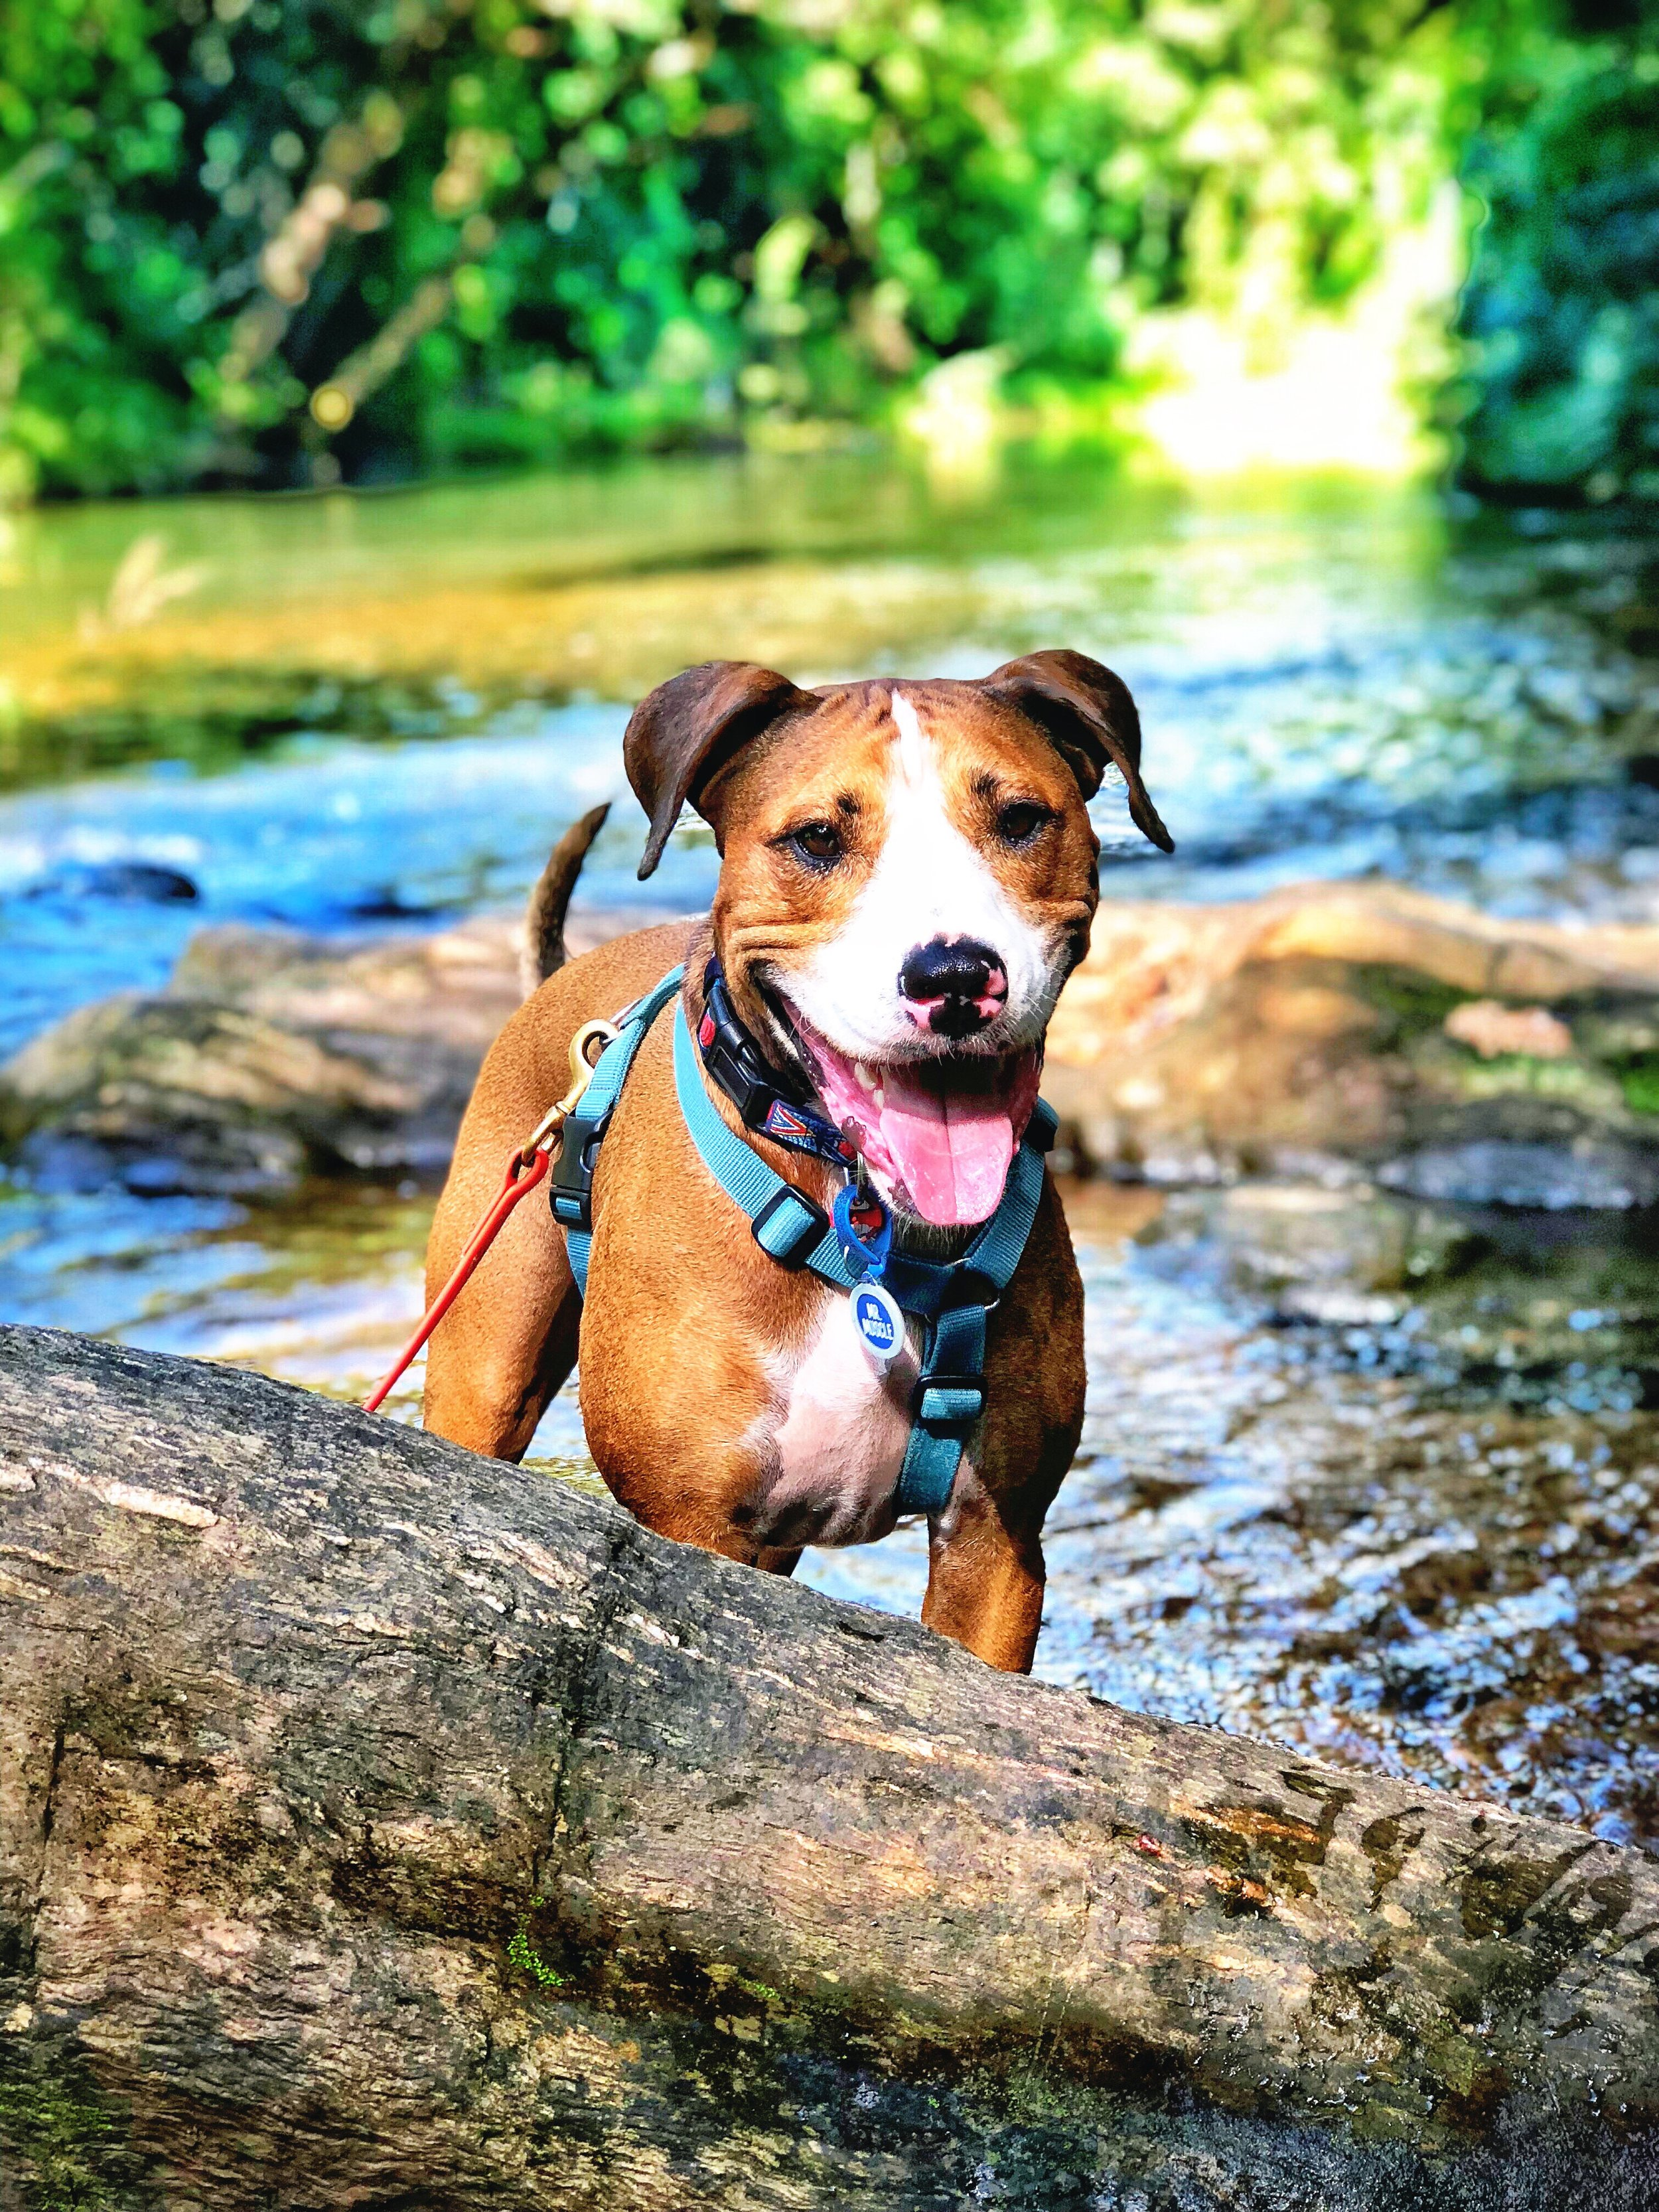 Enjoying life at the creek with his long lead